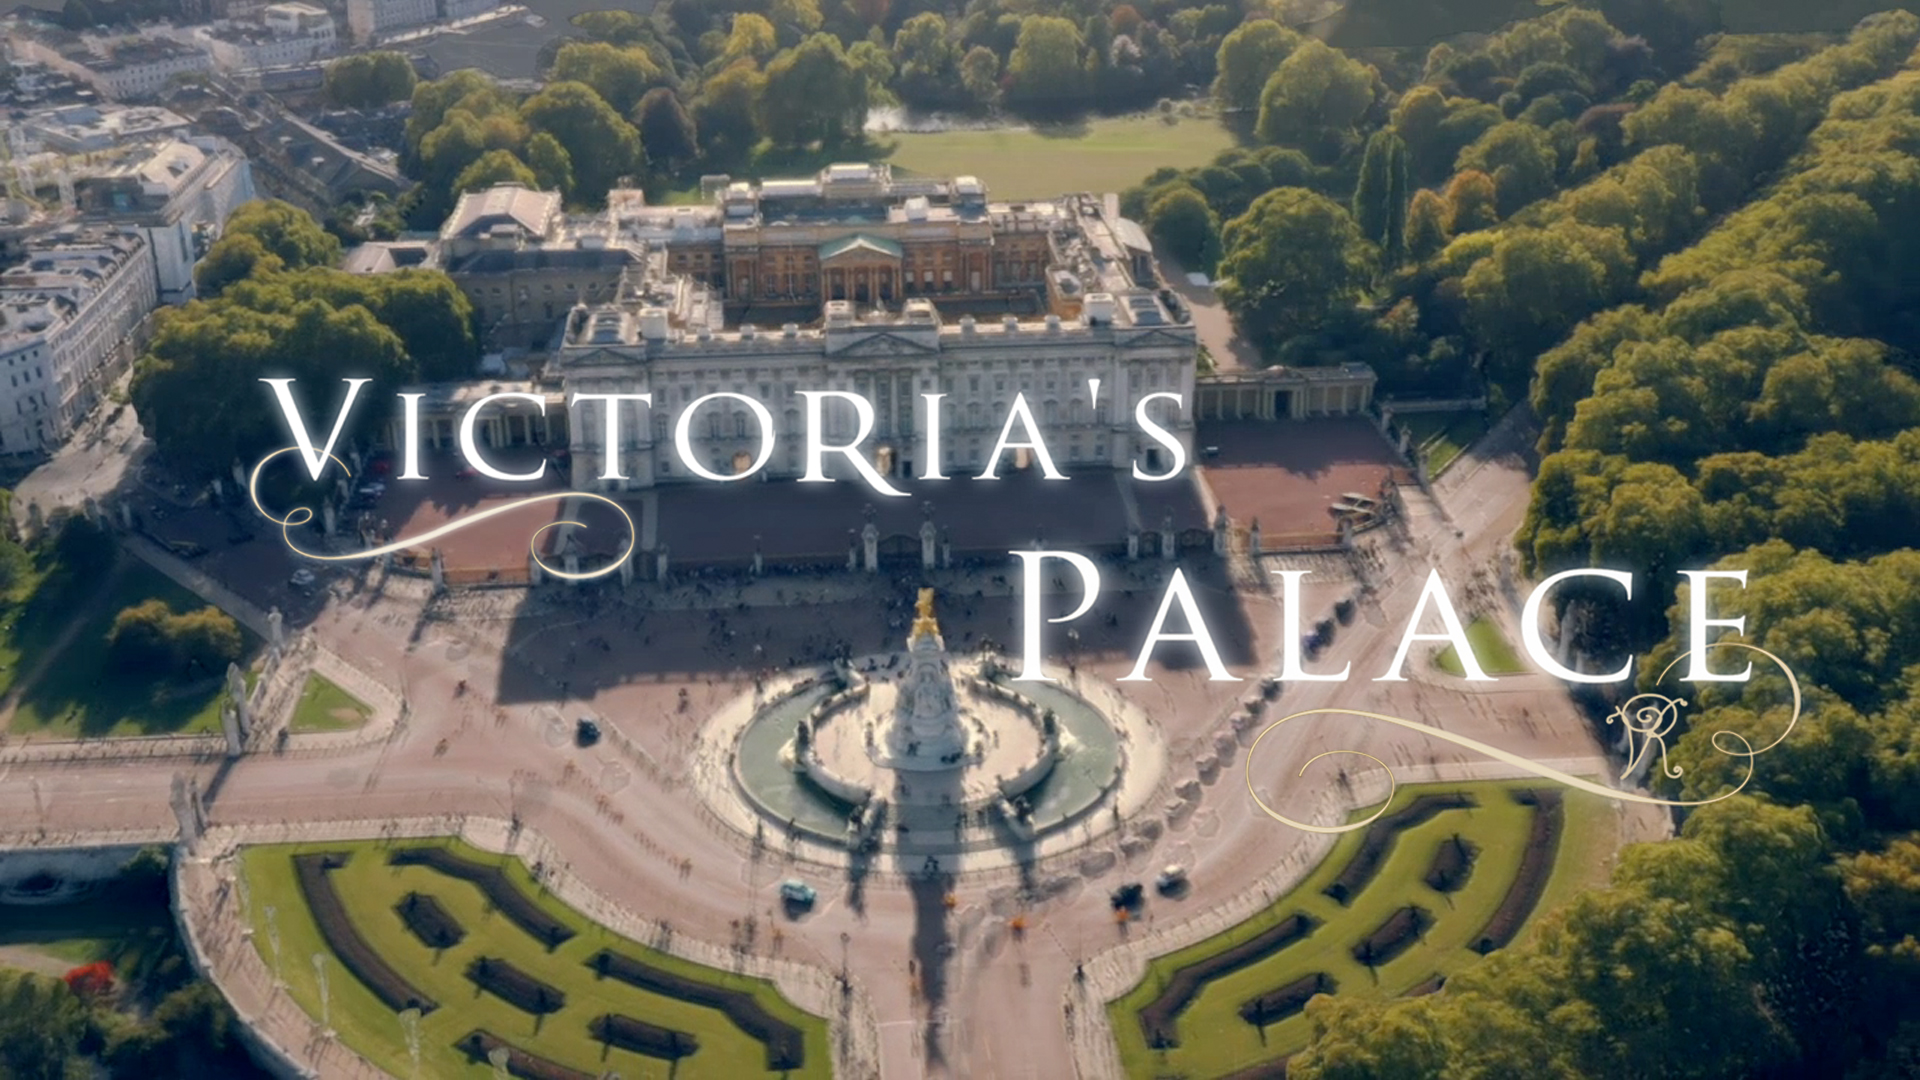 Victororias-Palace-logo-on-Buckingham-Palace.jpg